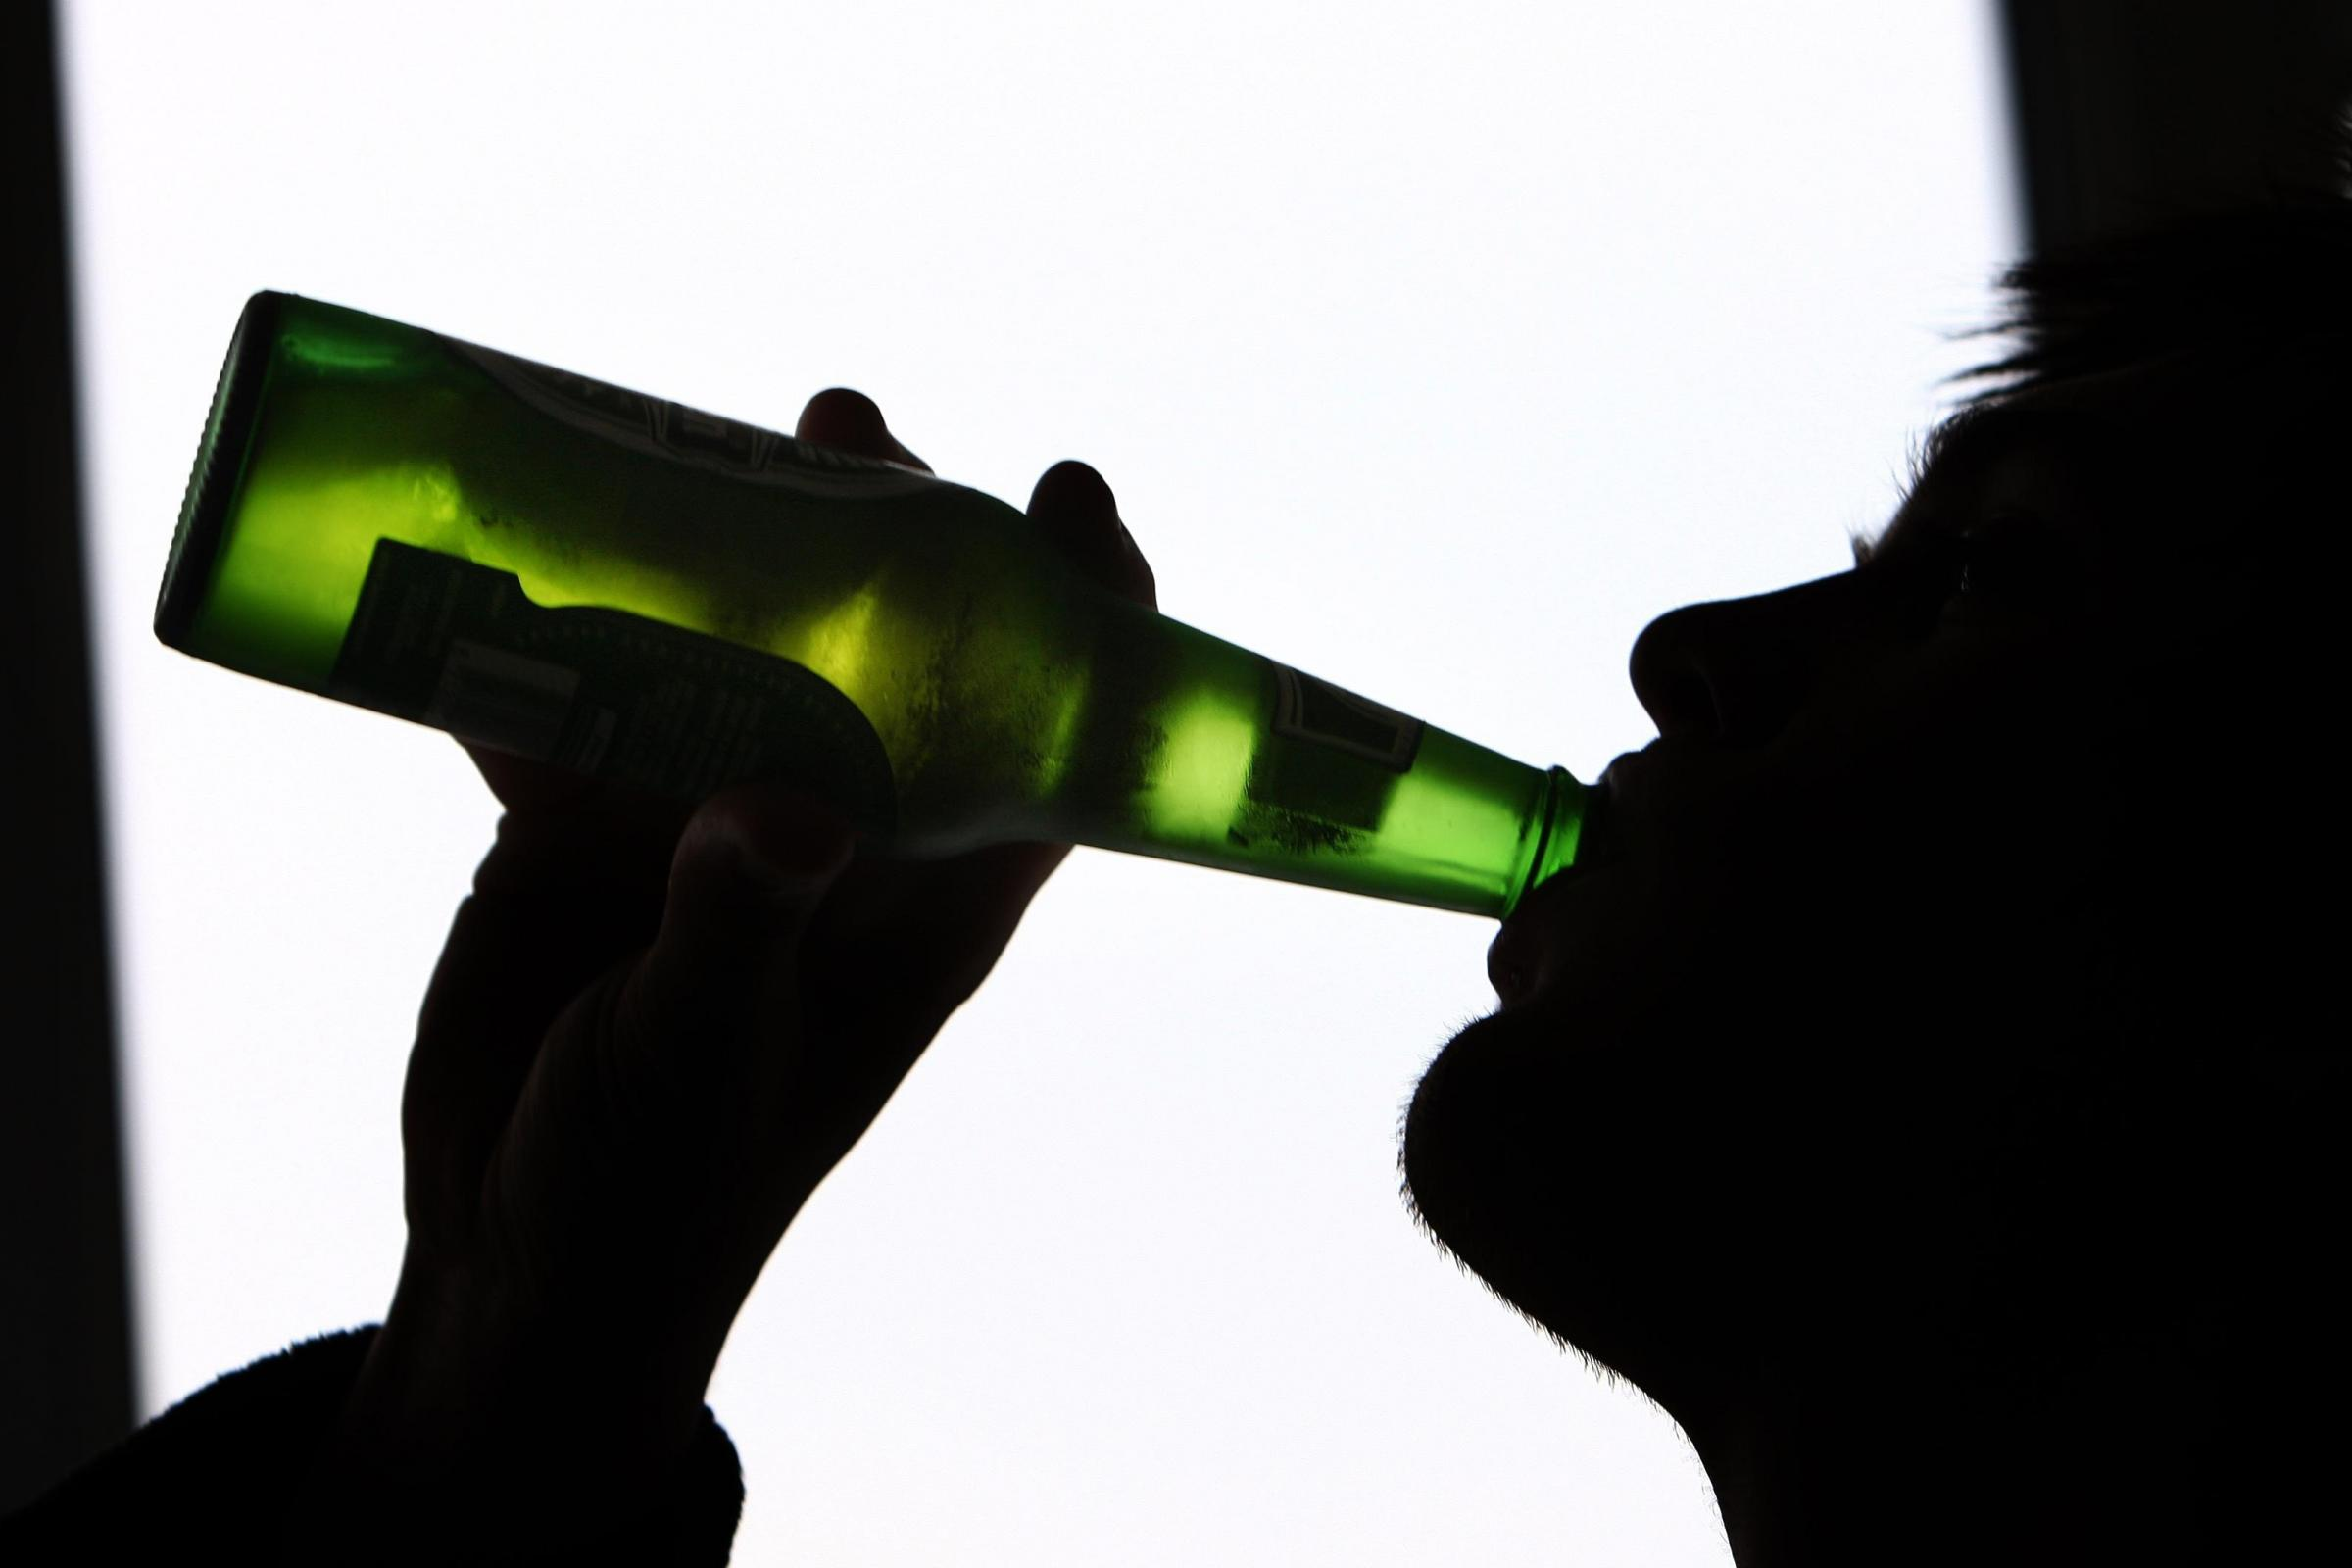 A silhouette of a young man drinking alcohol from a bottle